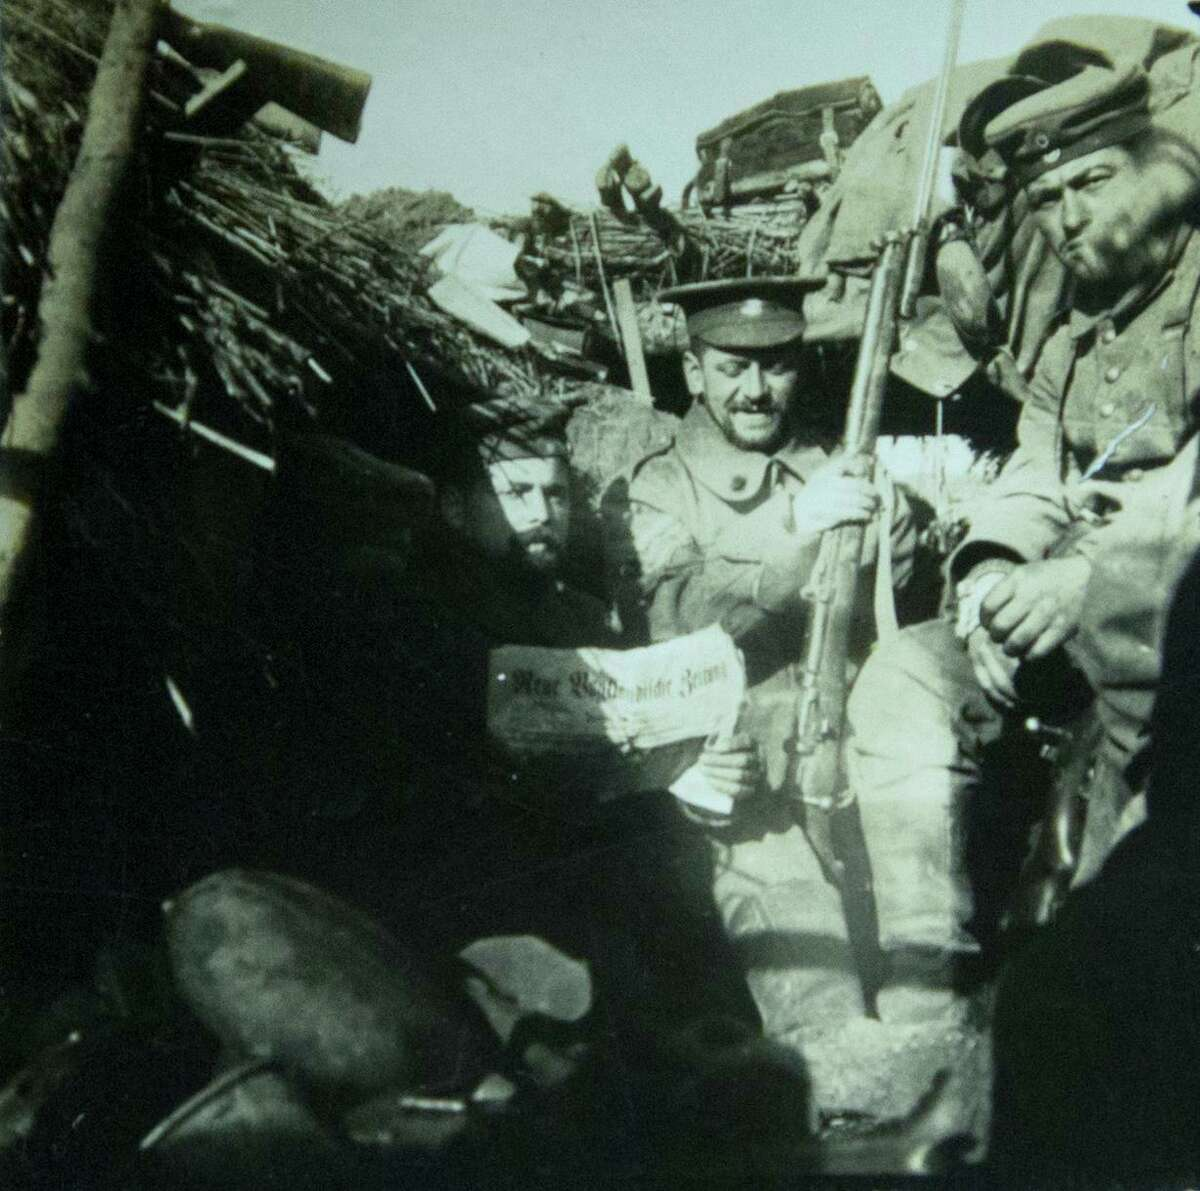 In this photo taken from an image in the collection at In Flanders Fields Museum provided by the family of German soldier Kurt Zehmisch, a German World War I soldier of the 103rd Saxon Regiment wears the hat of a British soldier as he sits in a trench with other German soldiers in Warneton, Belgium, during Dec. 1914.